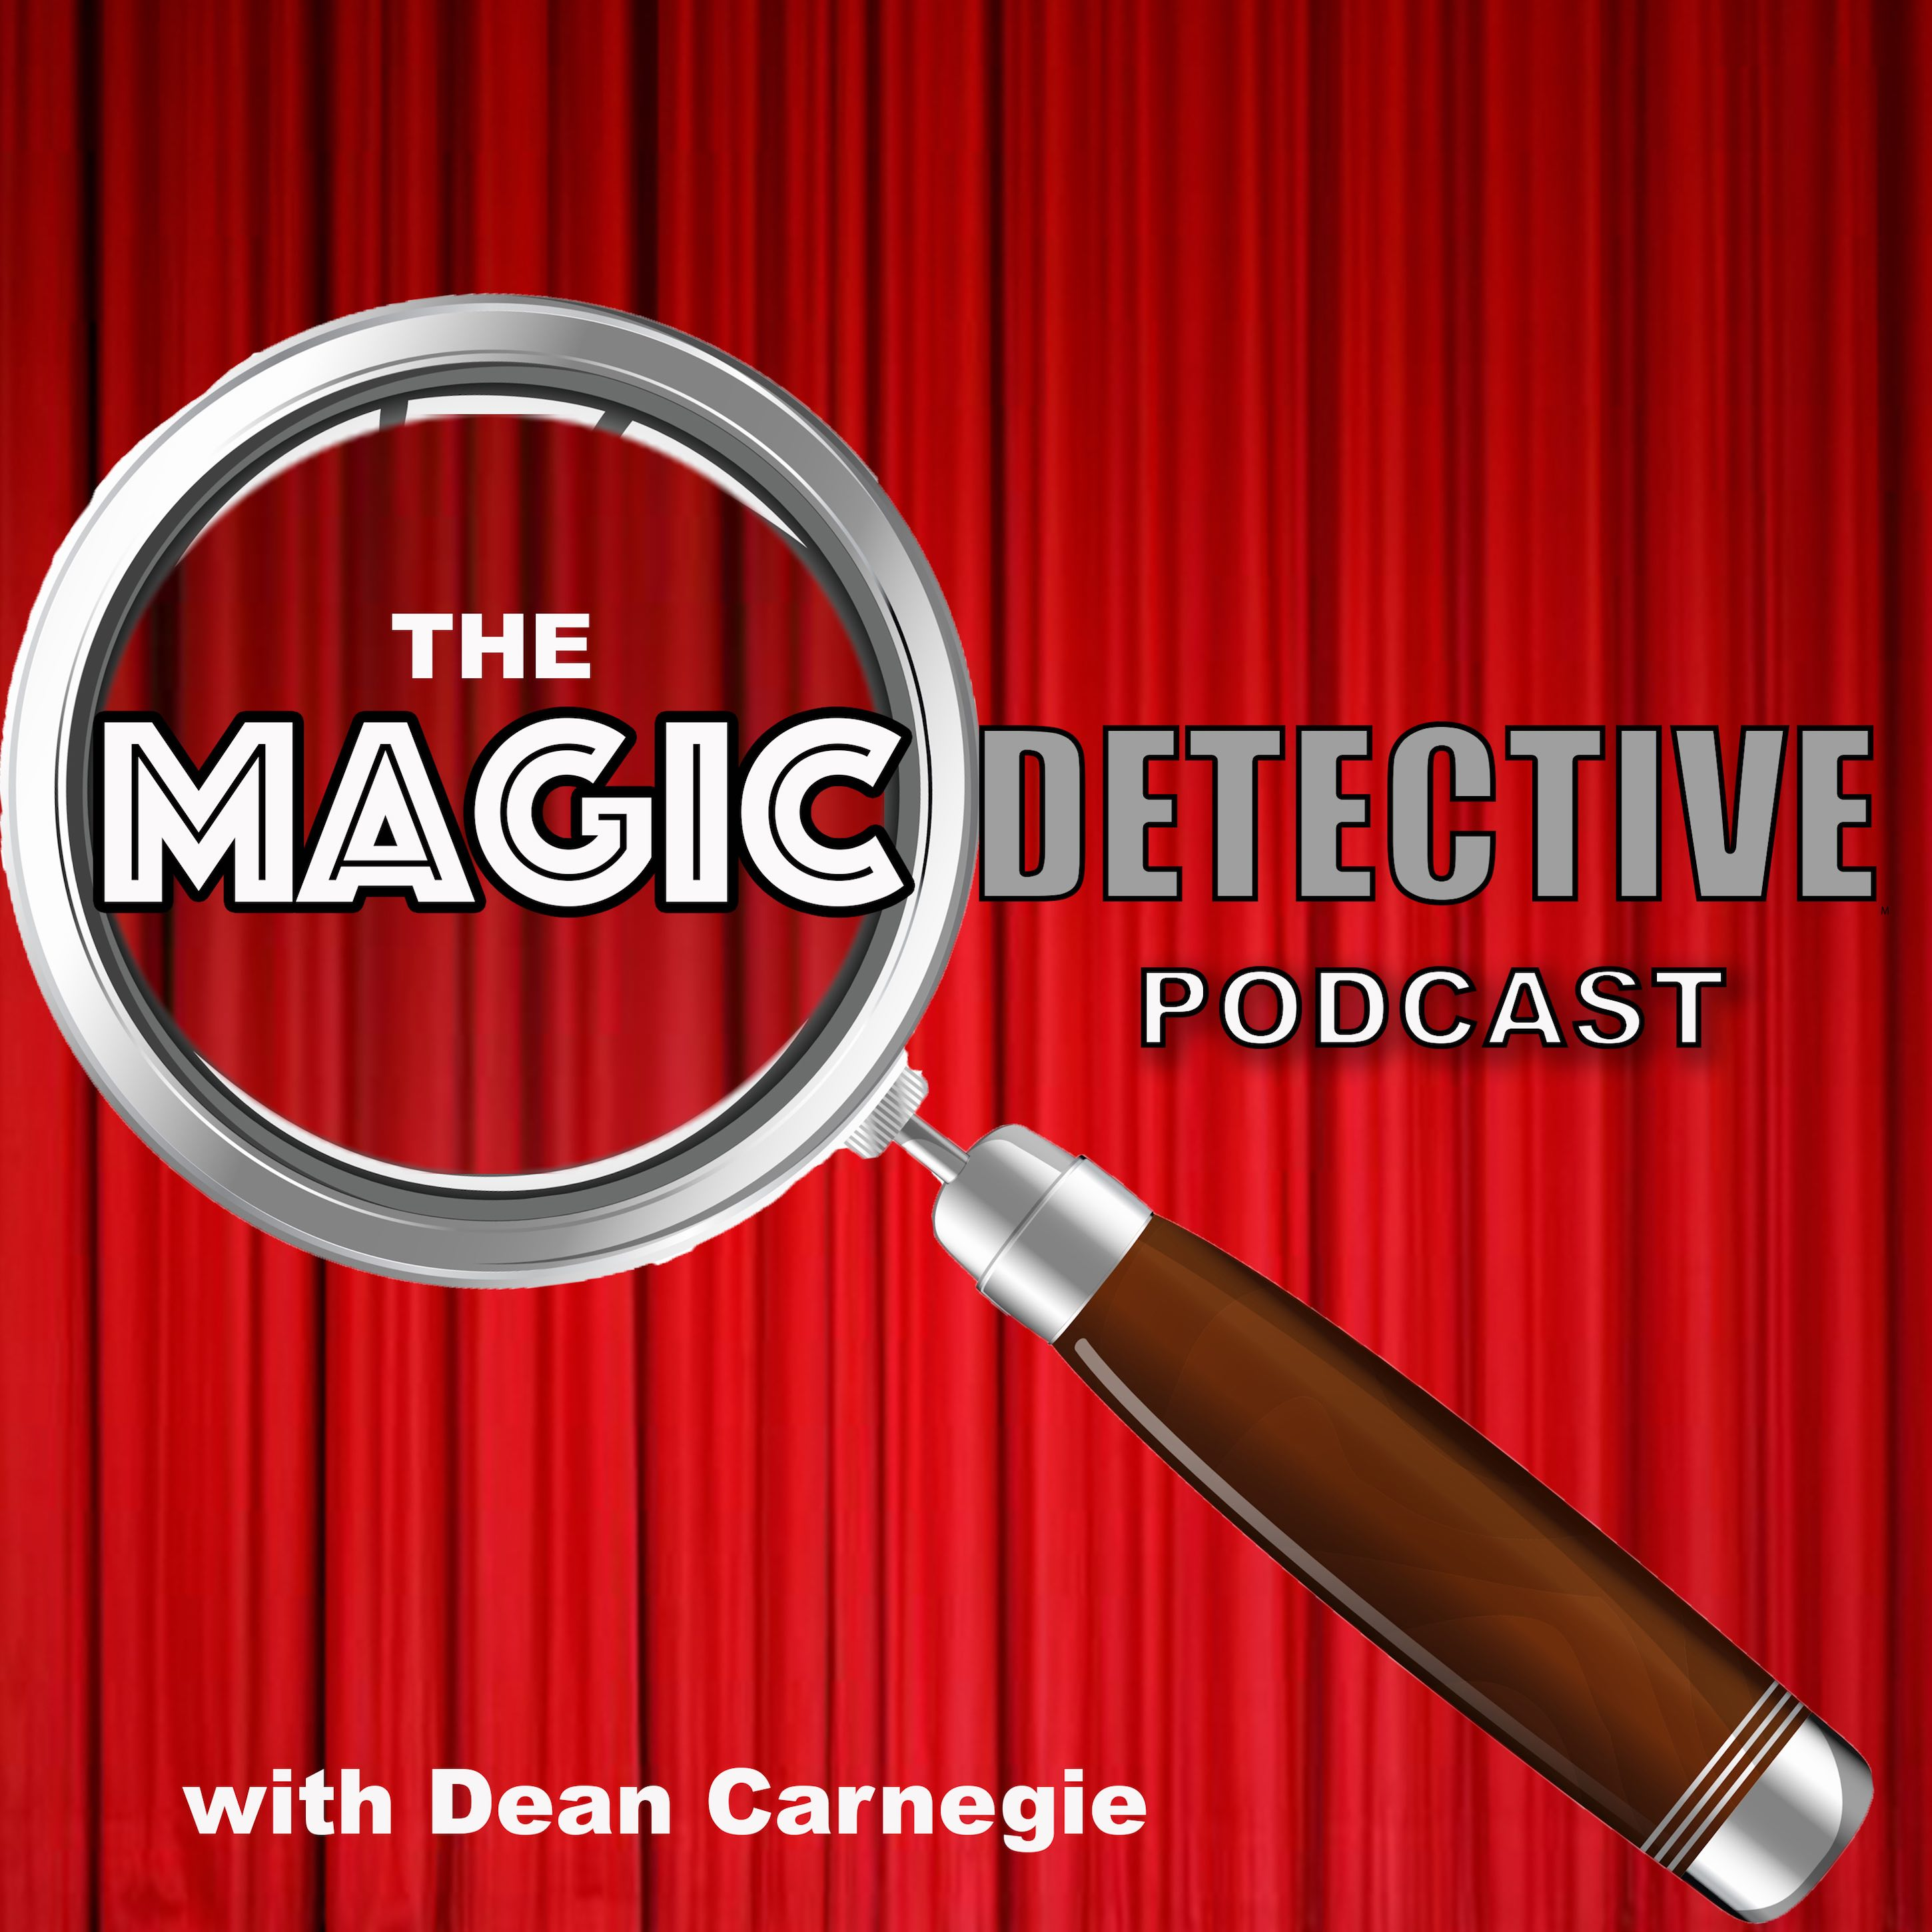 The Magic Detective Podcast